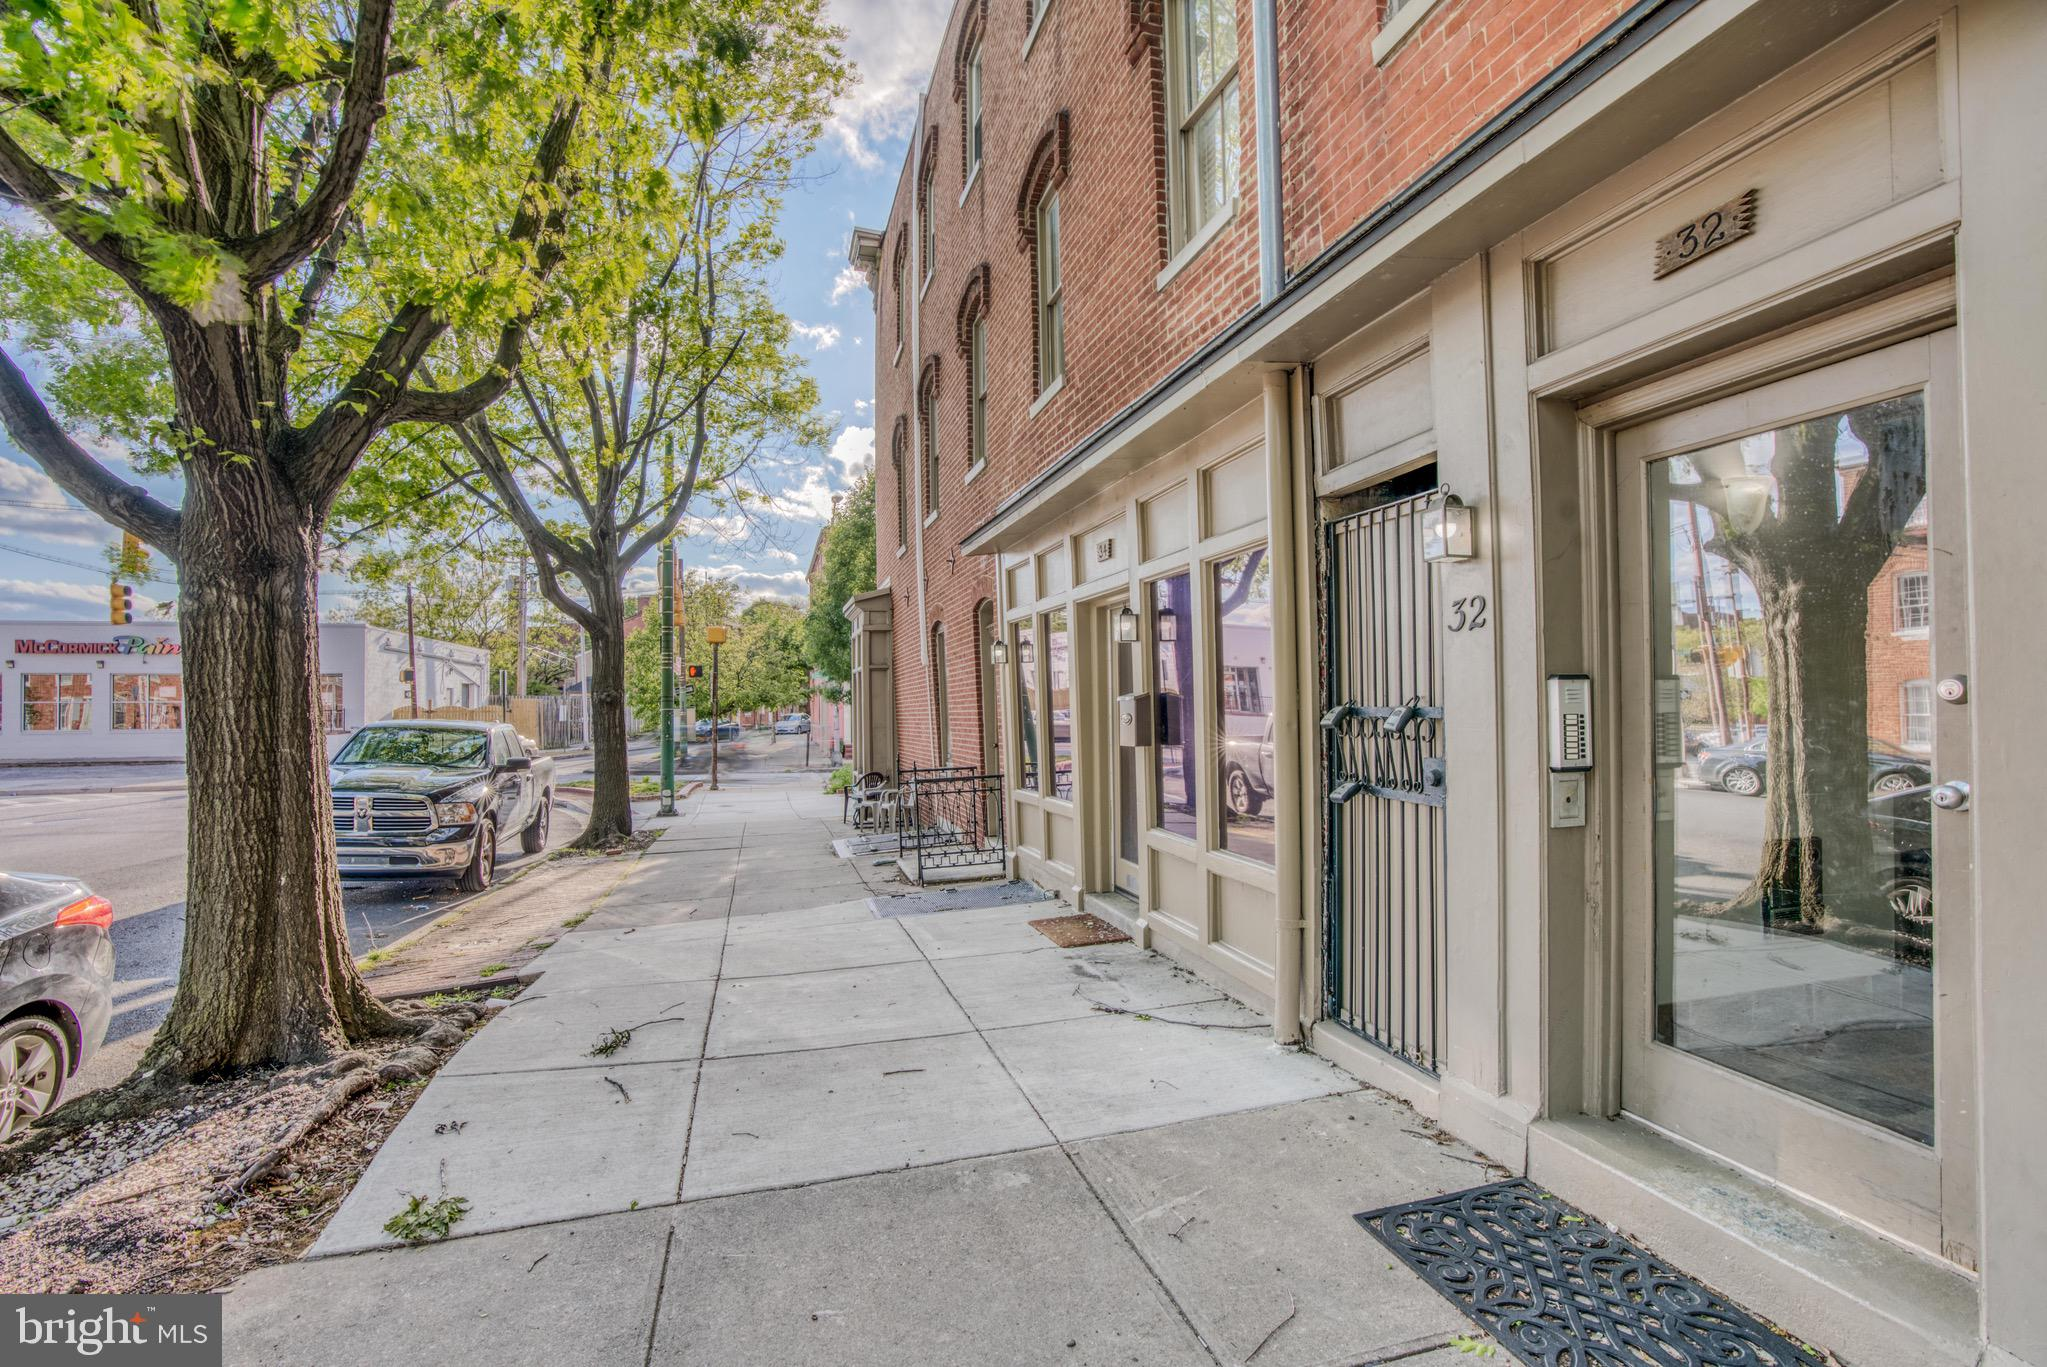 2 Bedroom Condo located in the Historic part of Federal Hill. With a location that can't be matched, It sits a few blocks away from the Harbor, Federal Hill Shops and Restaurants, and Camden Yards. It has off street parking and a roof top deck as well as being close to green space.  The condo has just been painted and boasts gleaming hardwood floors.  The main level has an entryway, bedroom and bathroom, just past that lies the open space kitchen and living area. The kitchen has granite counters and stainless appliances and is connected to the kitchen with a breakfast bar which is great for entertaining. There are many windows that allow lots of natural light to flow through the entire unit.  The upper level contains a spacious bedroom and bathroom as well as a full washer and dryer.